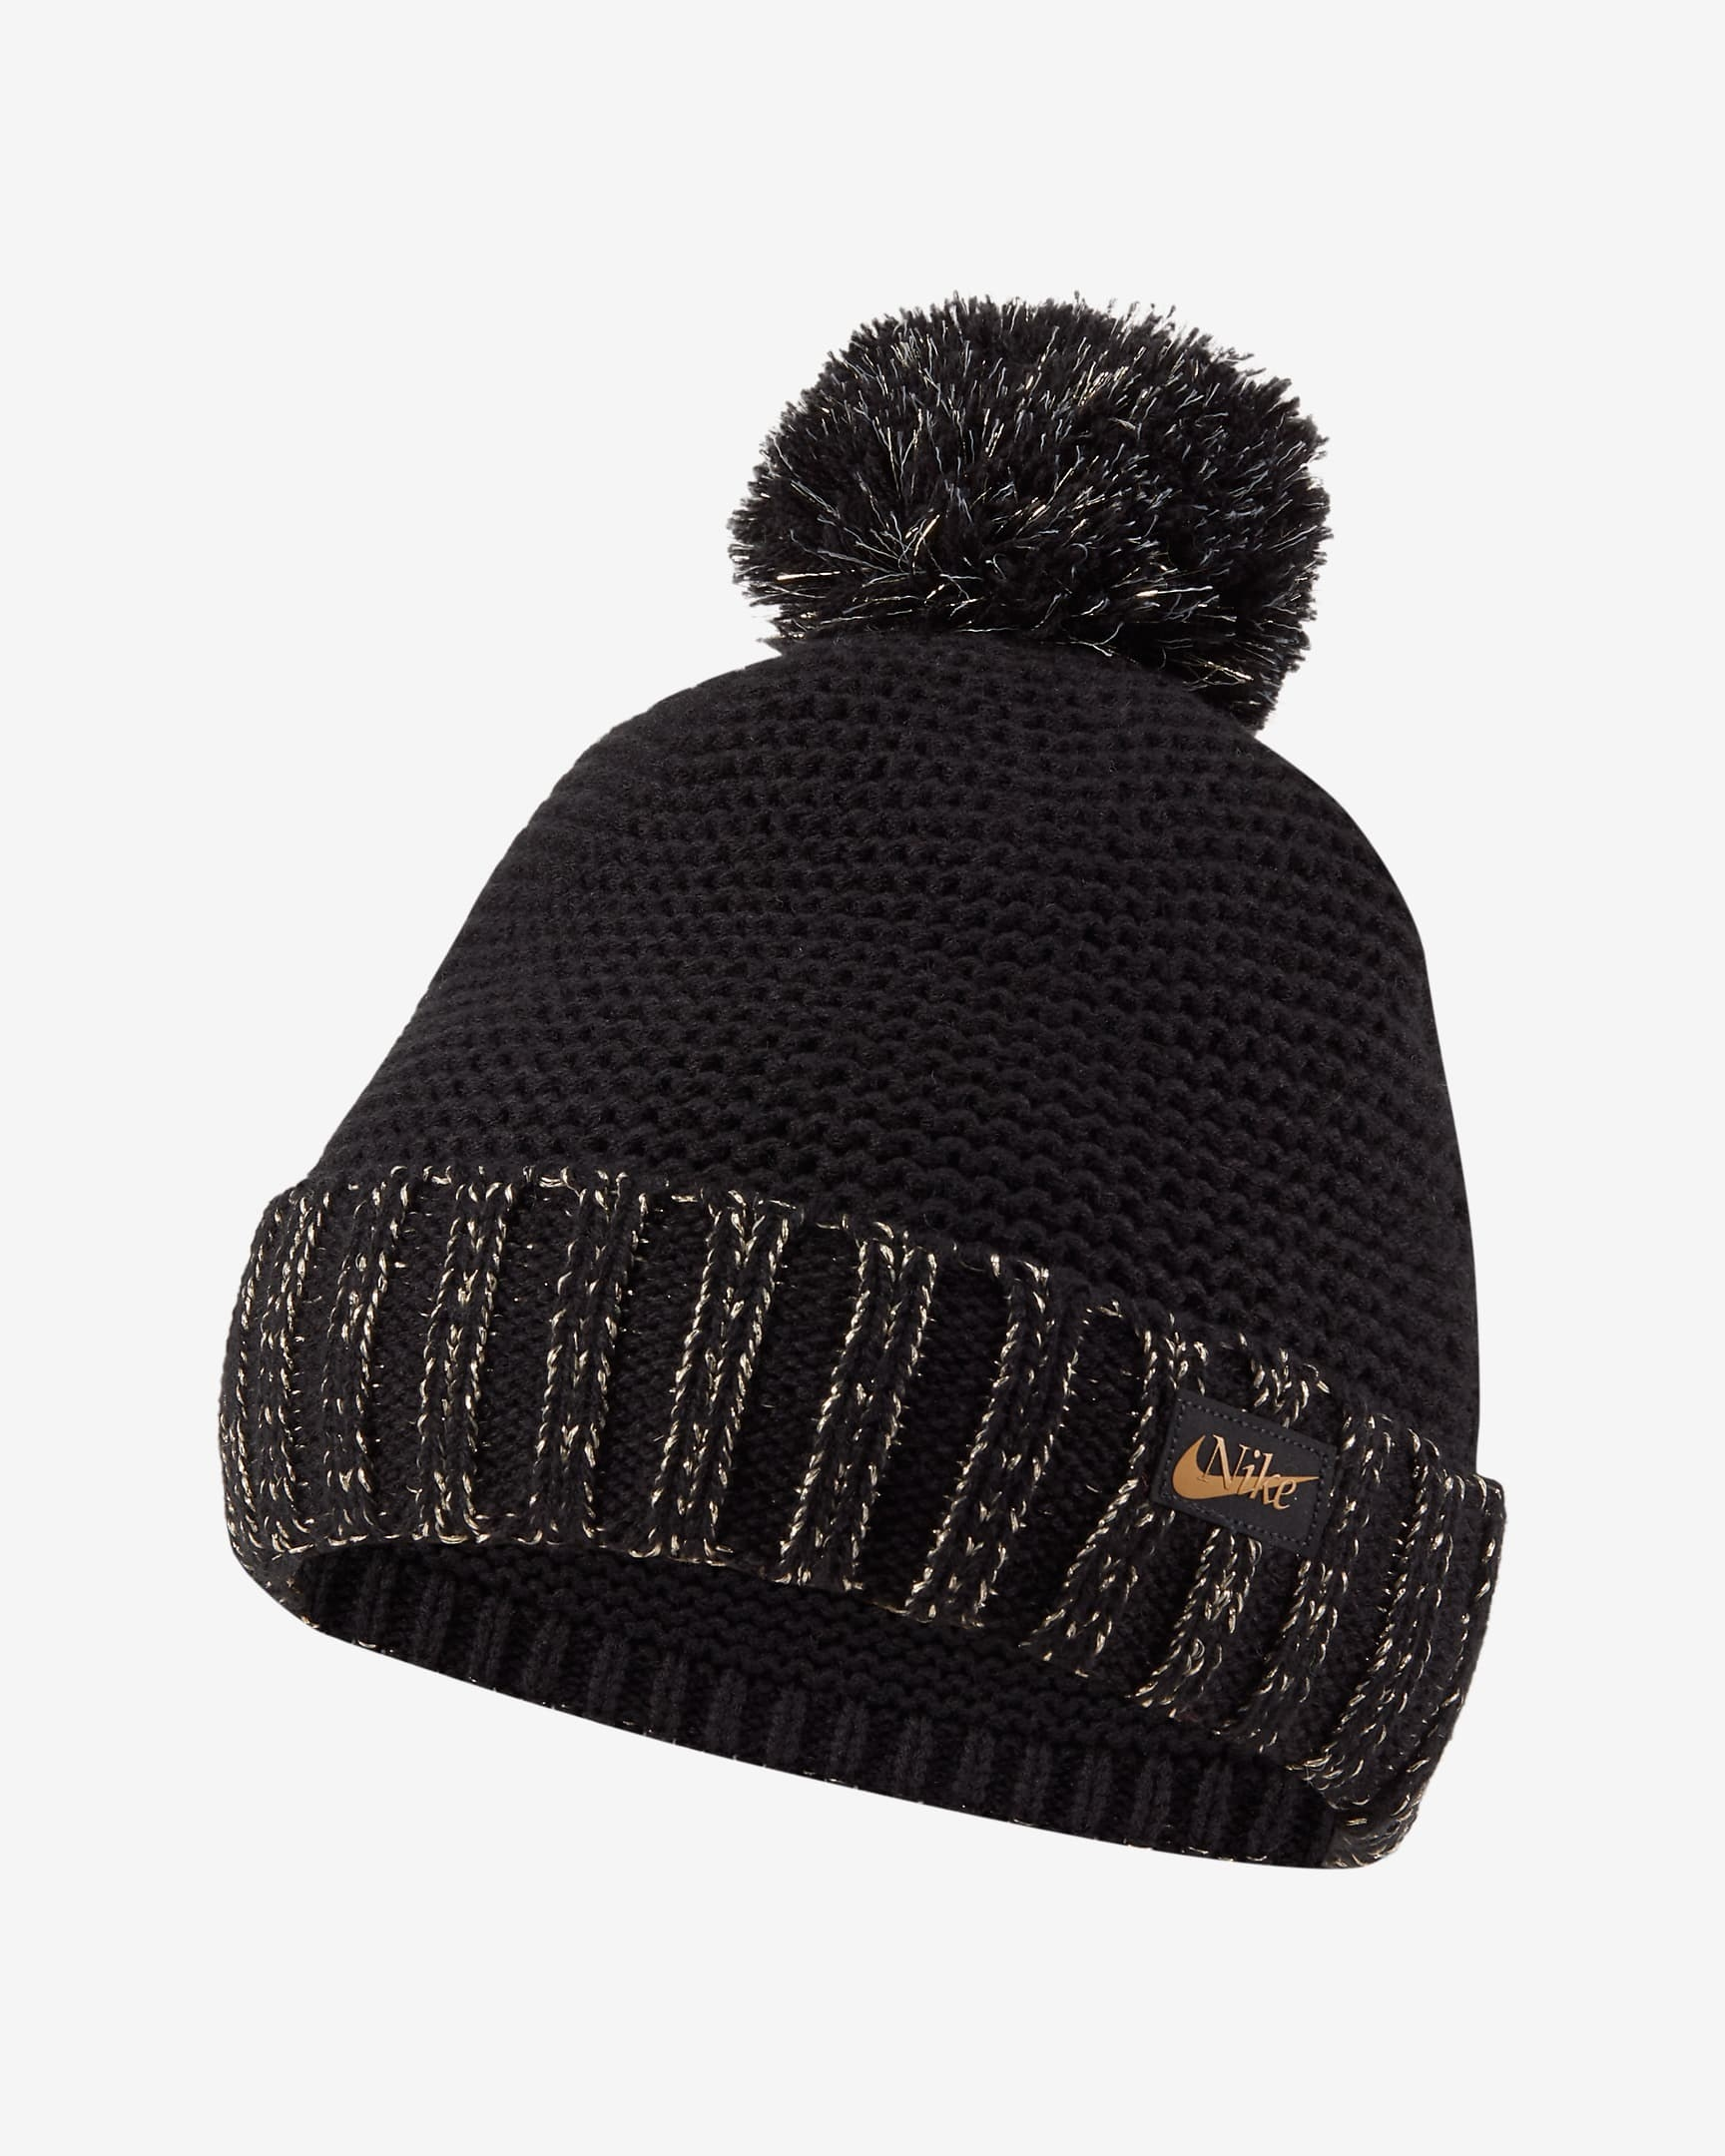 The knit hat in black with black and gold band and black poof on top